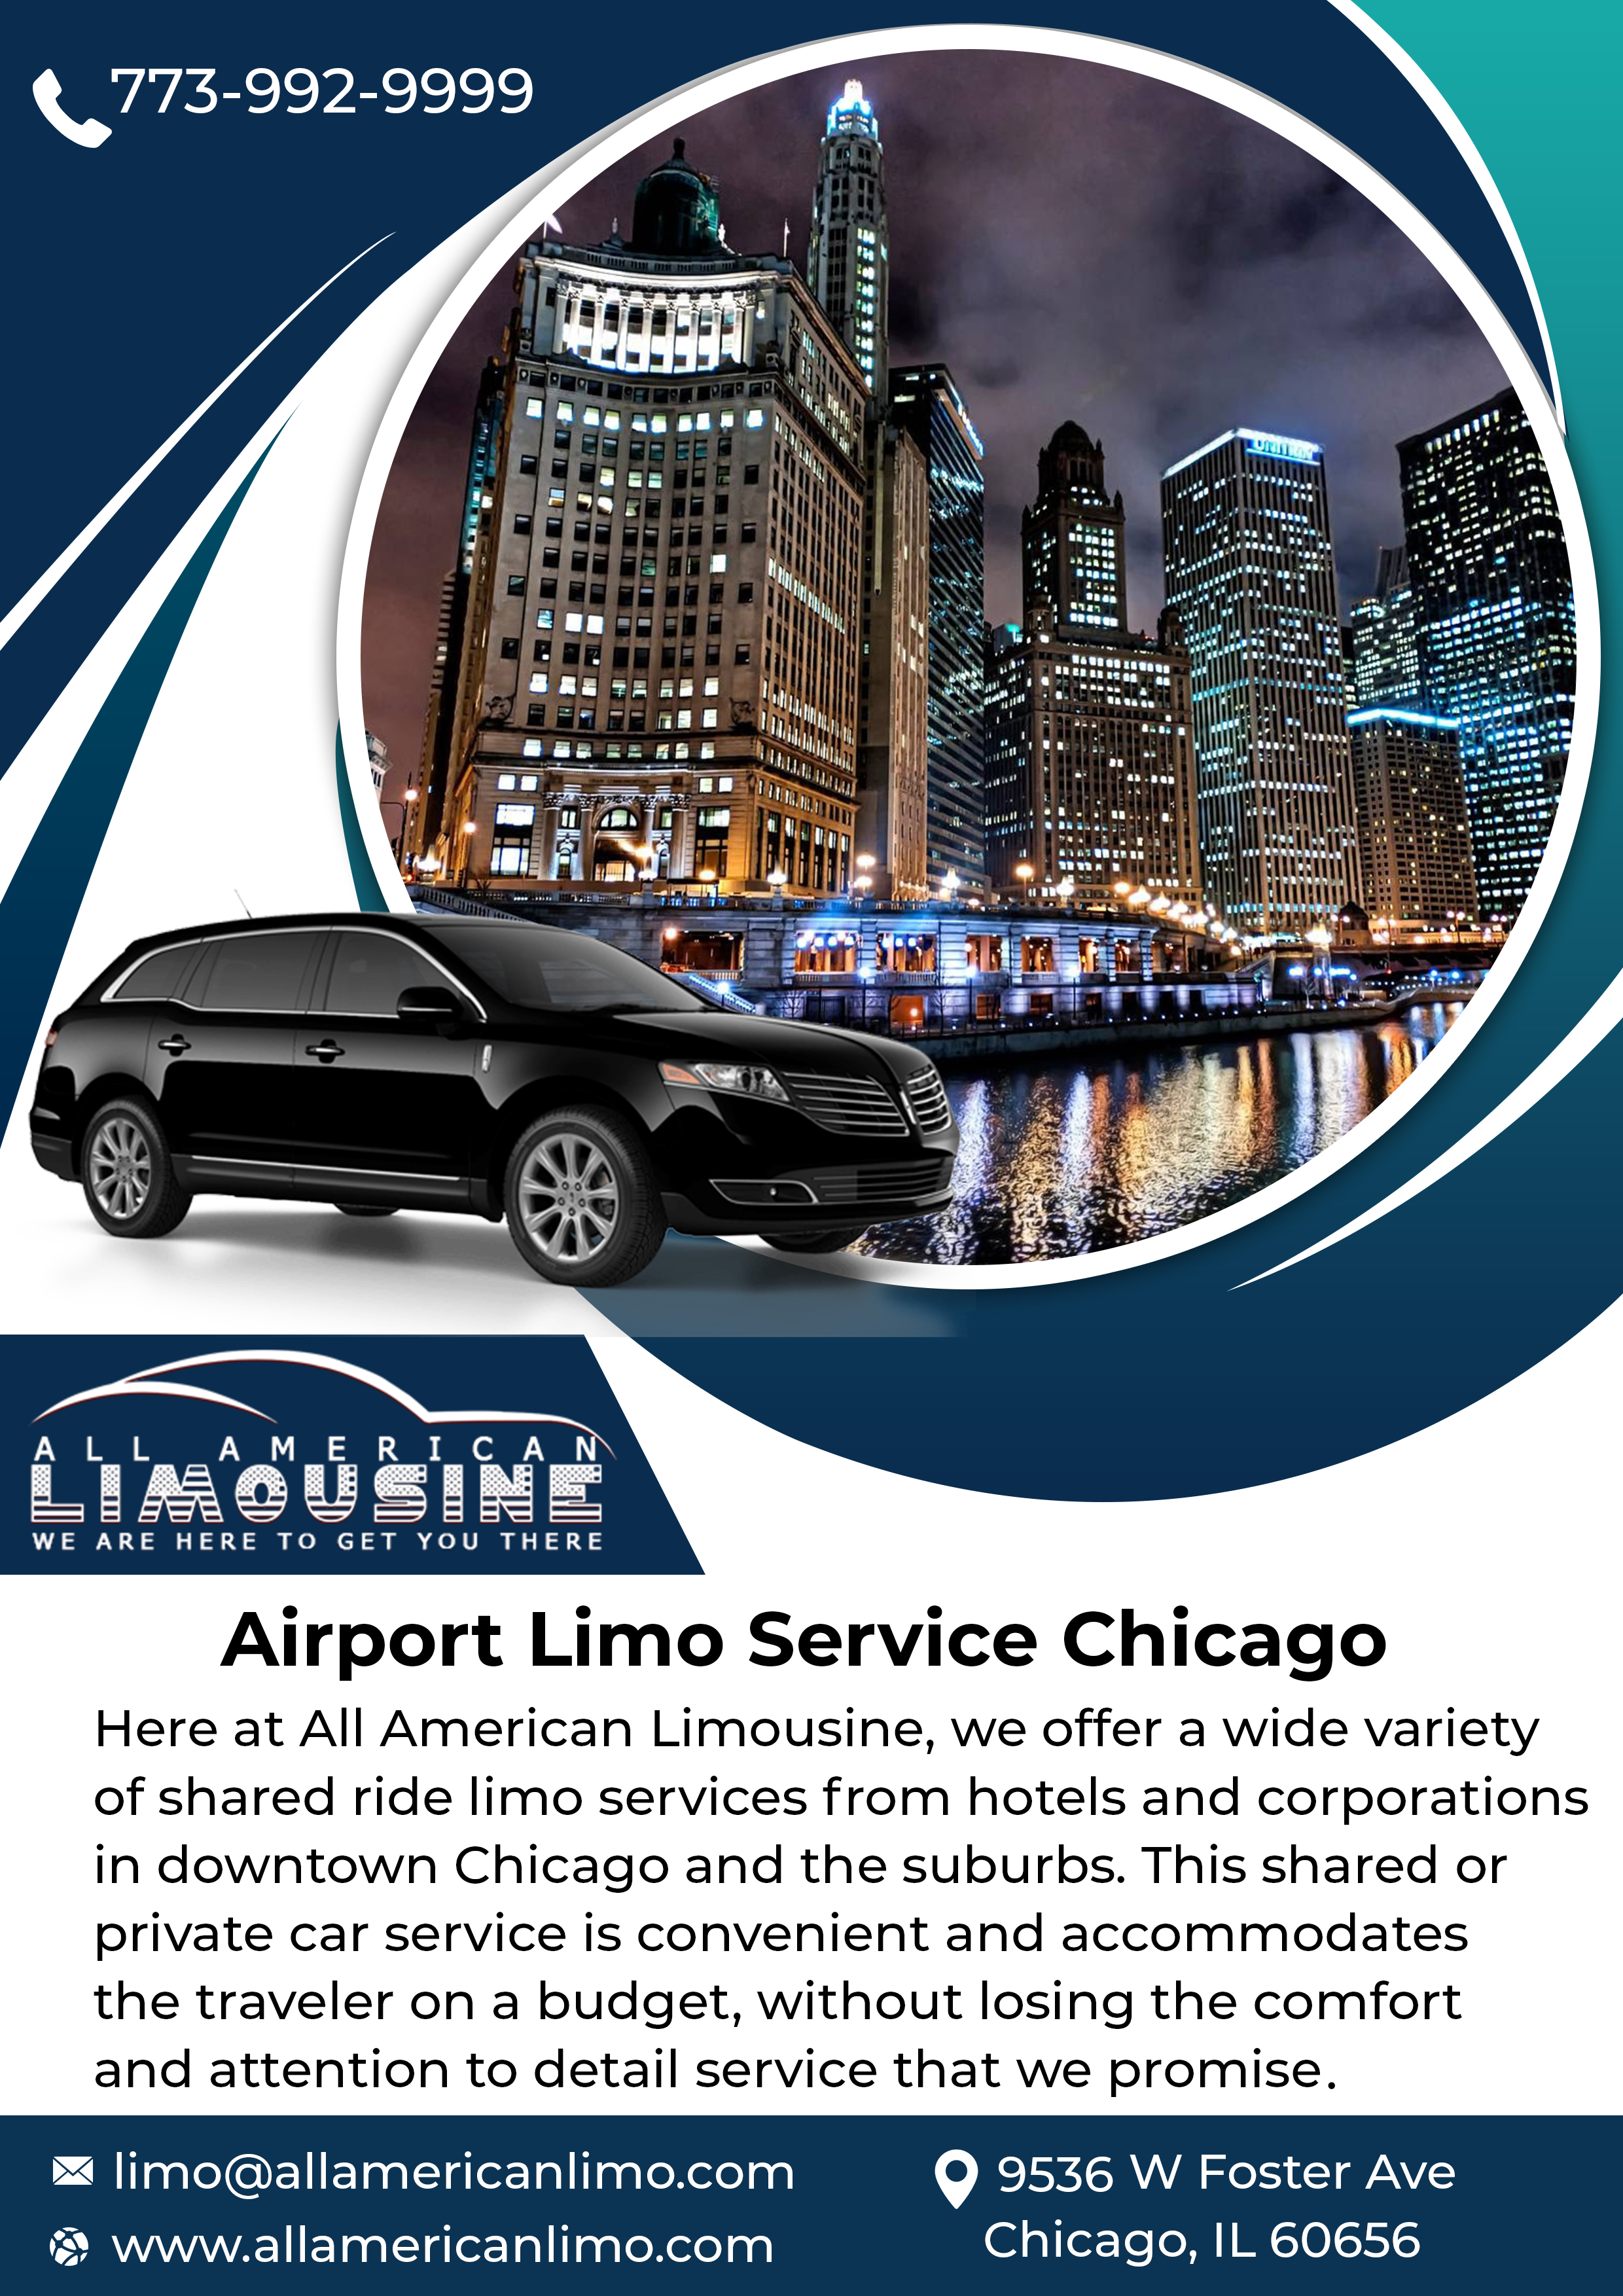 Airport Limo Service Chicago, Ride to O'Hare Airport, Chicago Airport Limo Service